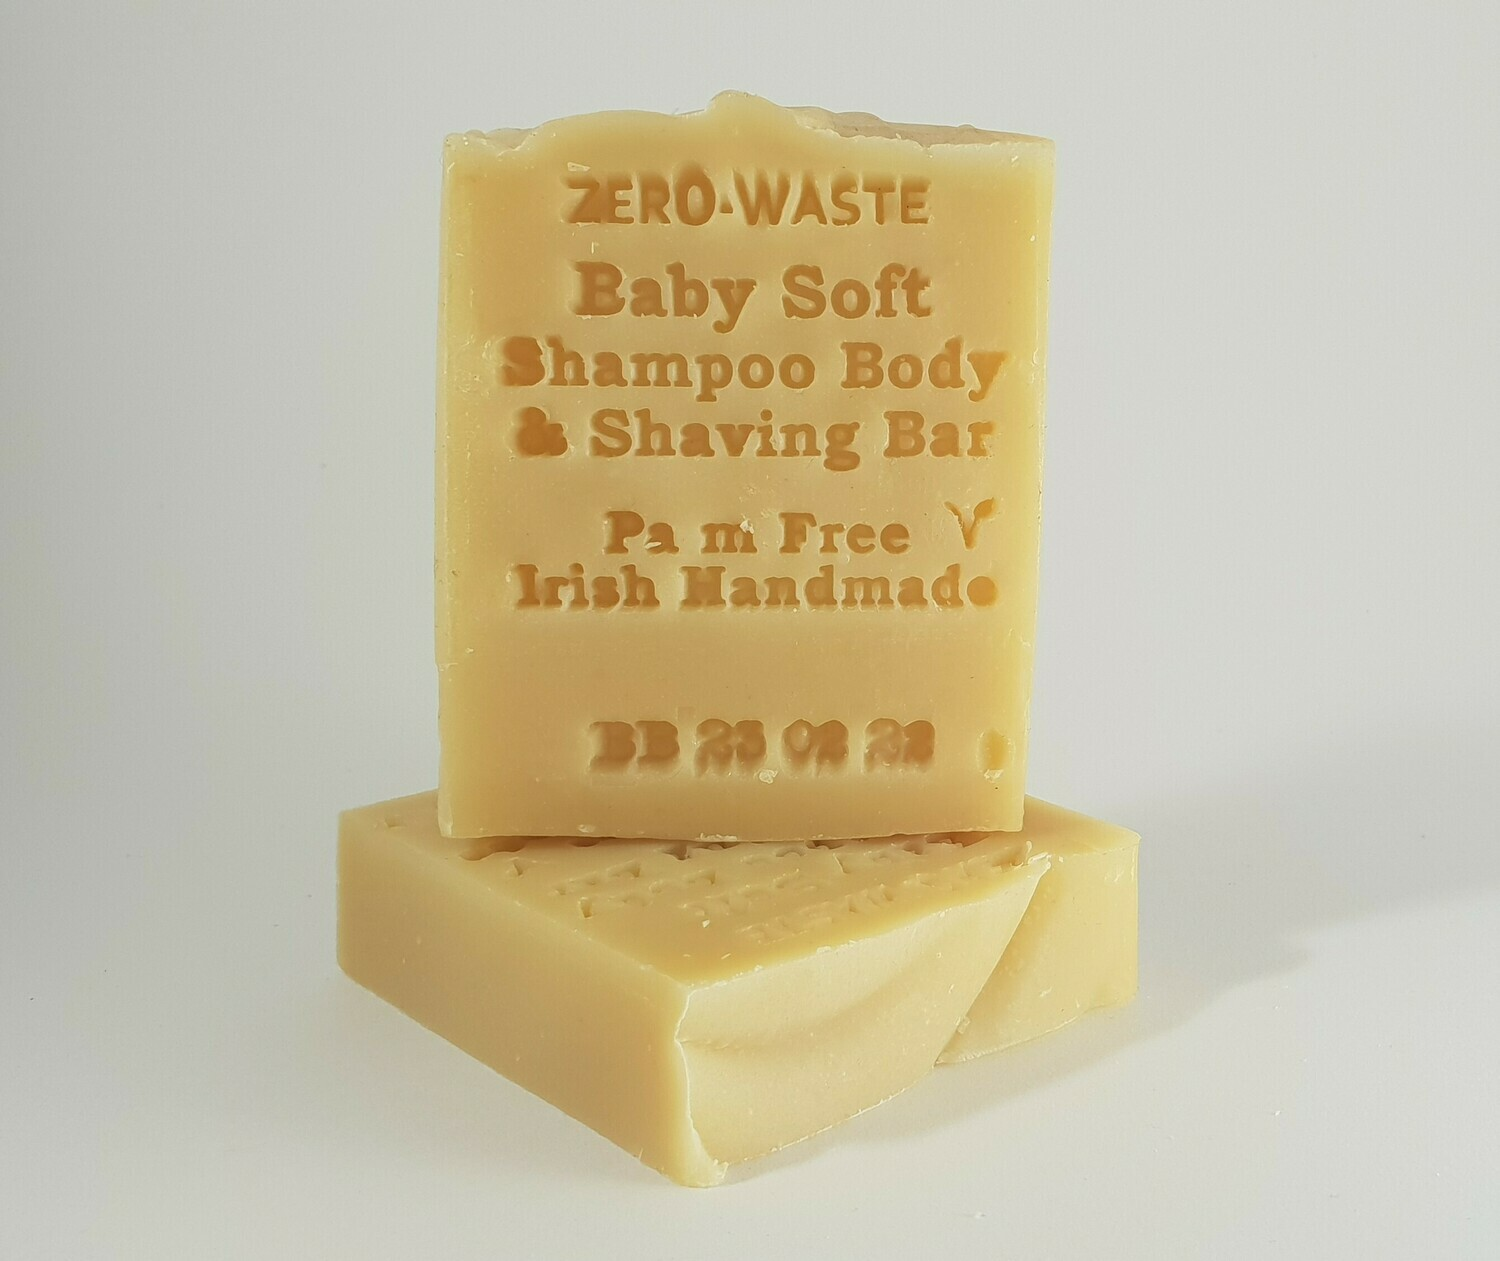 Palm Free Irish Baby Shampoo & Body Bar